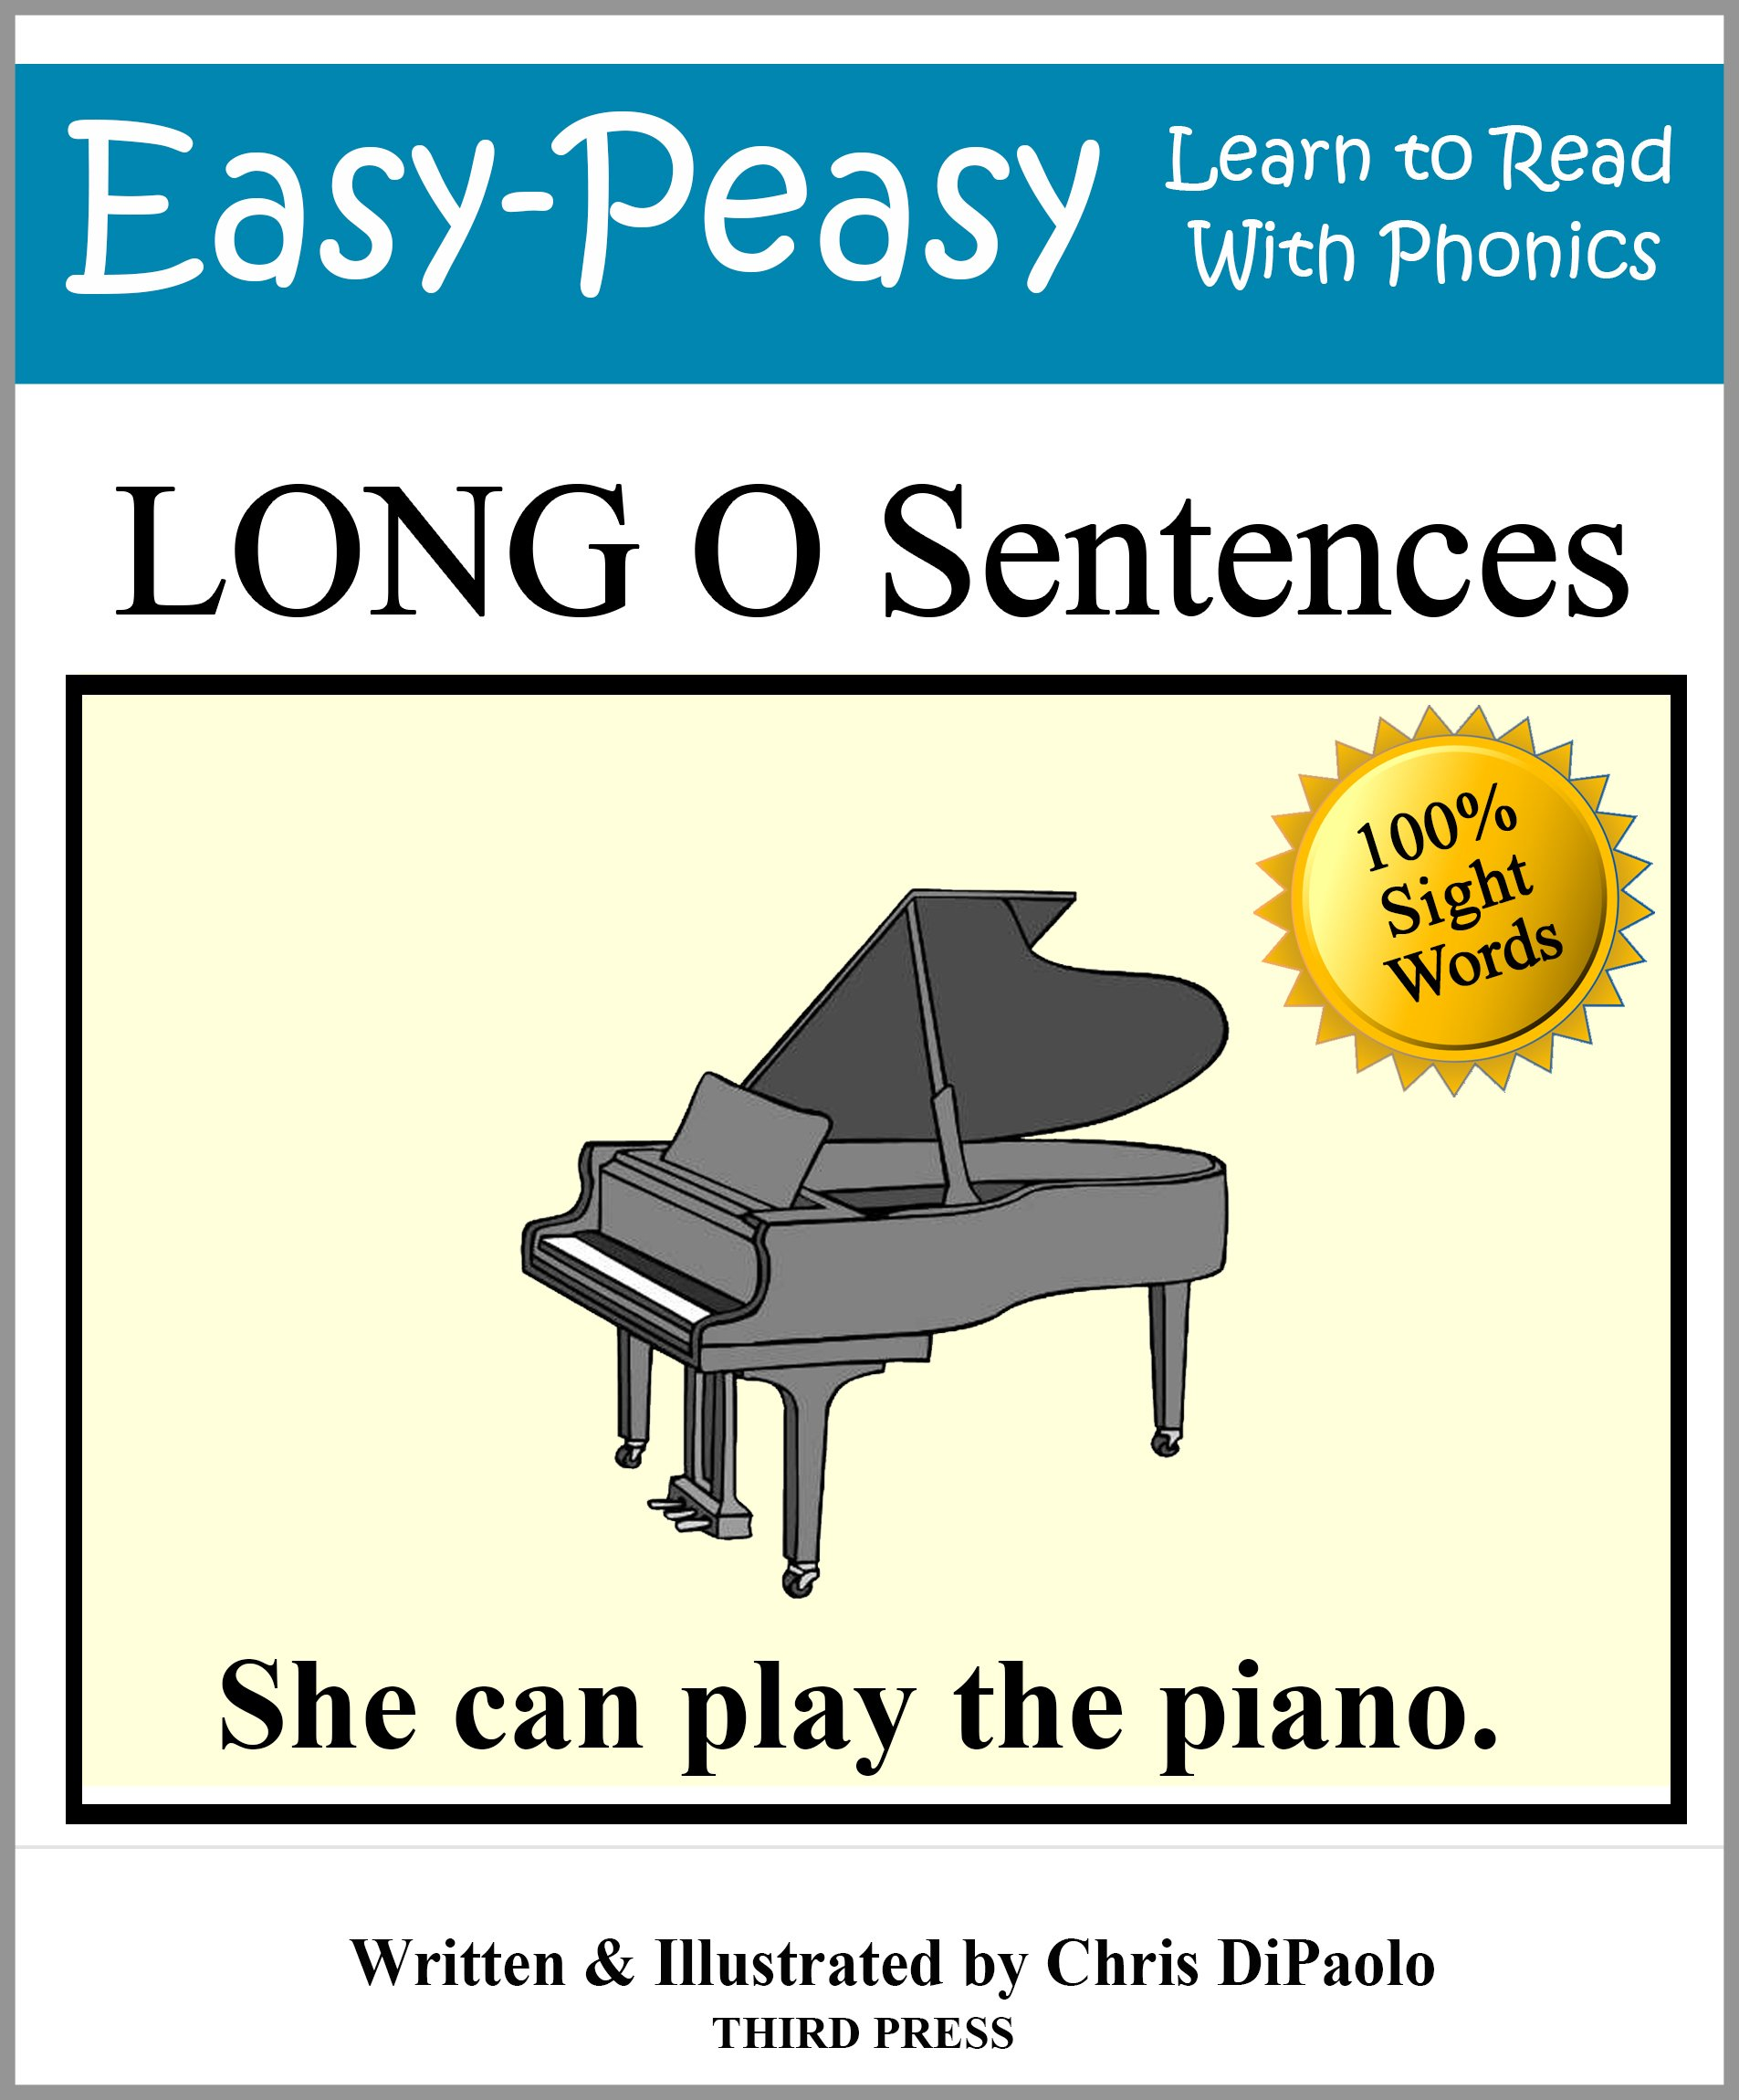 Long O Sentences: Practice Reading Phonics Vowel Sounds with 100% Sight Words (Learn to Read With Phonics Sentences Book 9) (English Edition)